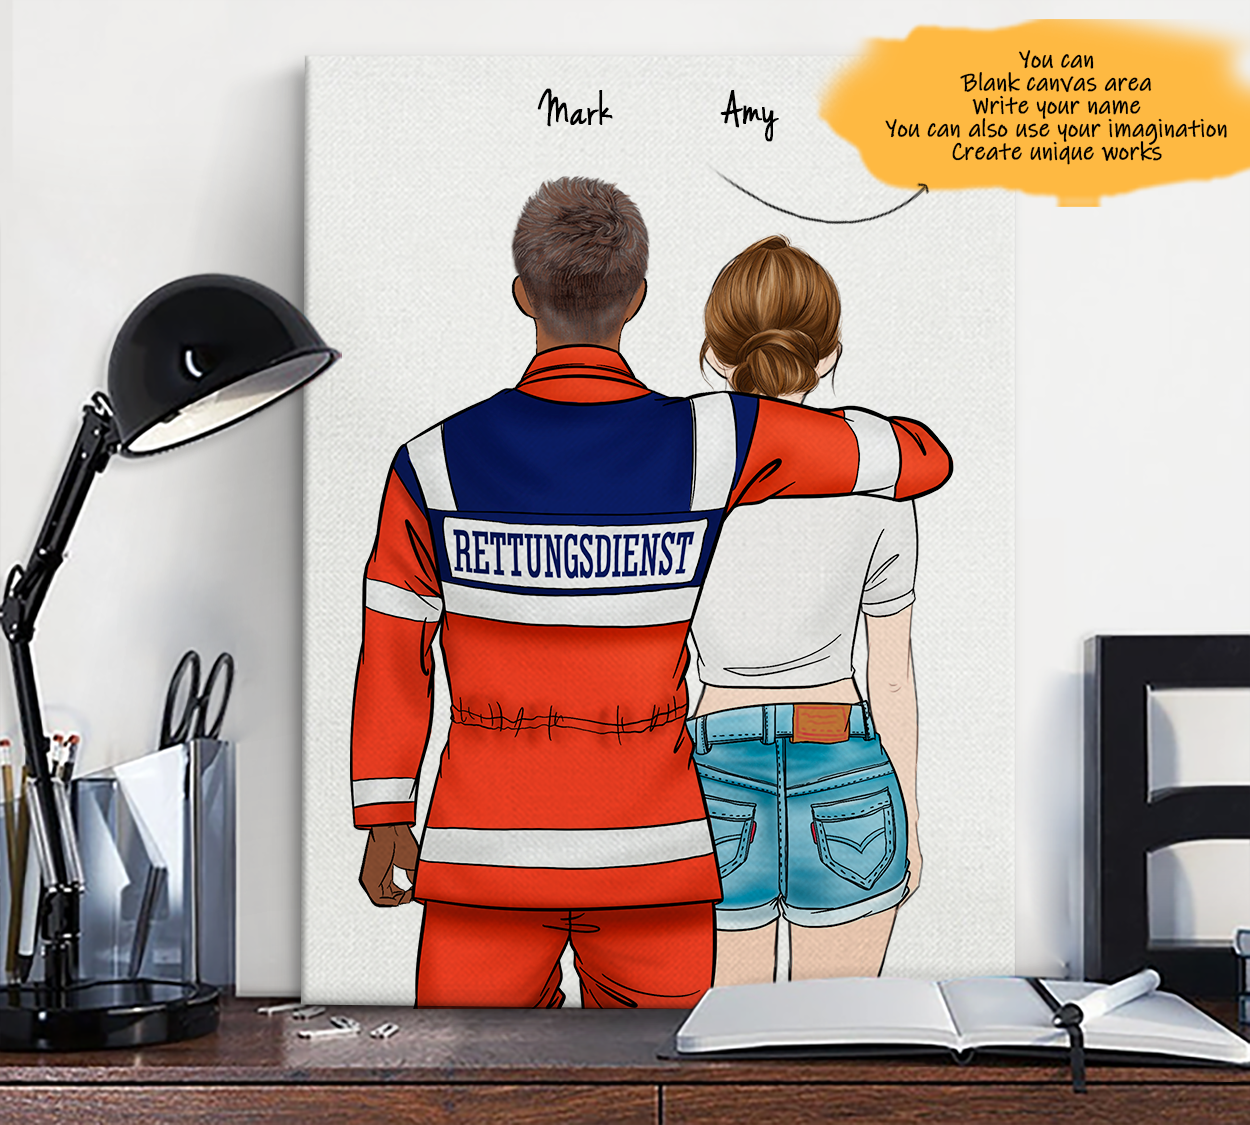 He is My Friend! Hand Draw Custom Canvas-Print Gift AmbulanceDriverGermany-Dark&CowboyGirl